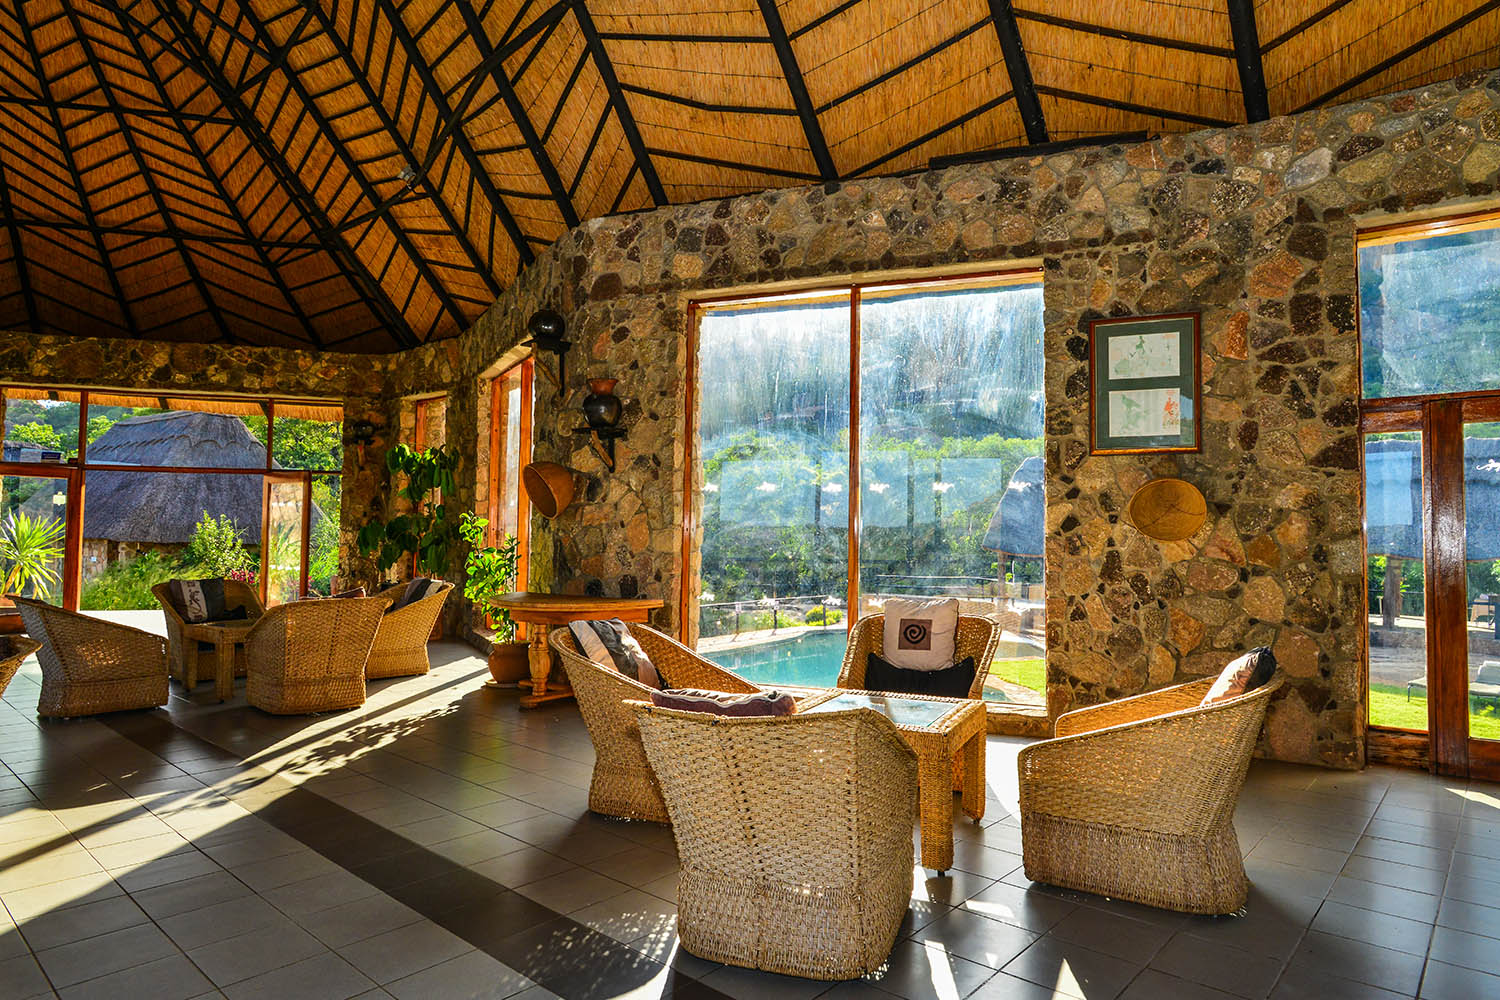 matobo hills lodge zimbabwe-lodges-accommodation-matopos-matobo-national-park-africa-lounge-area